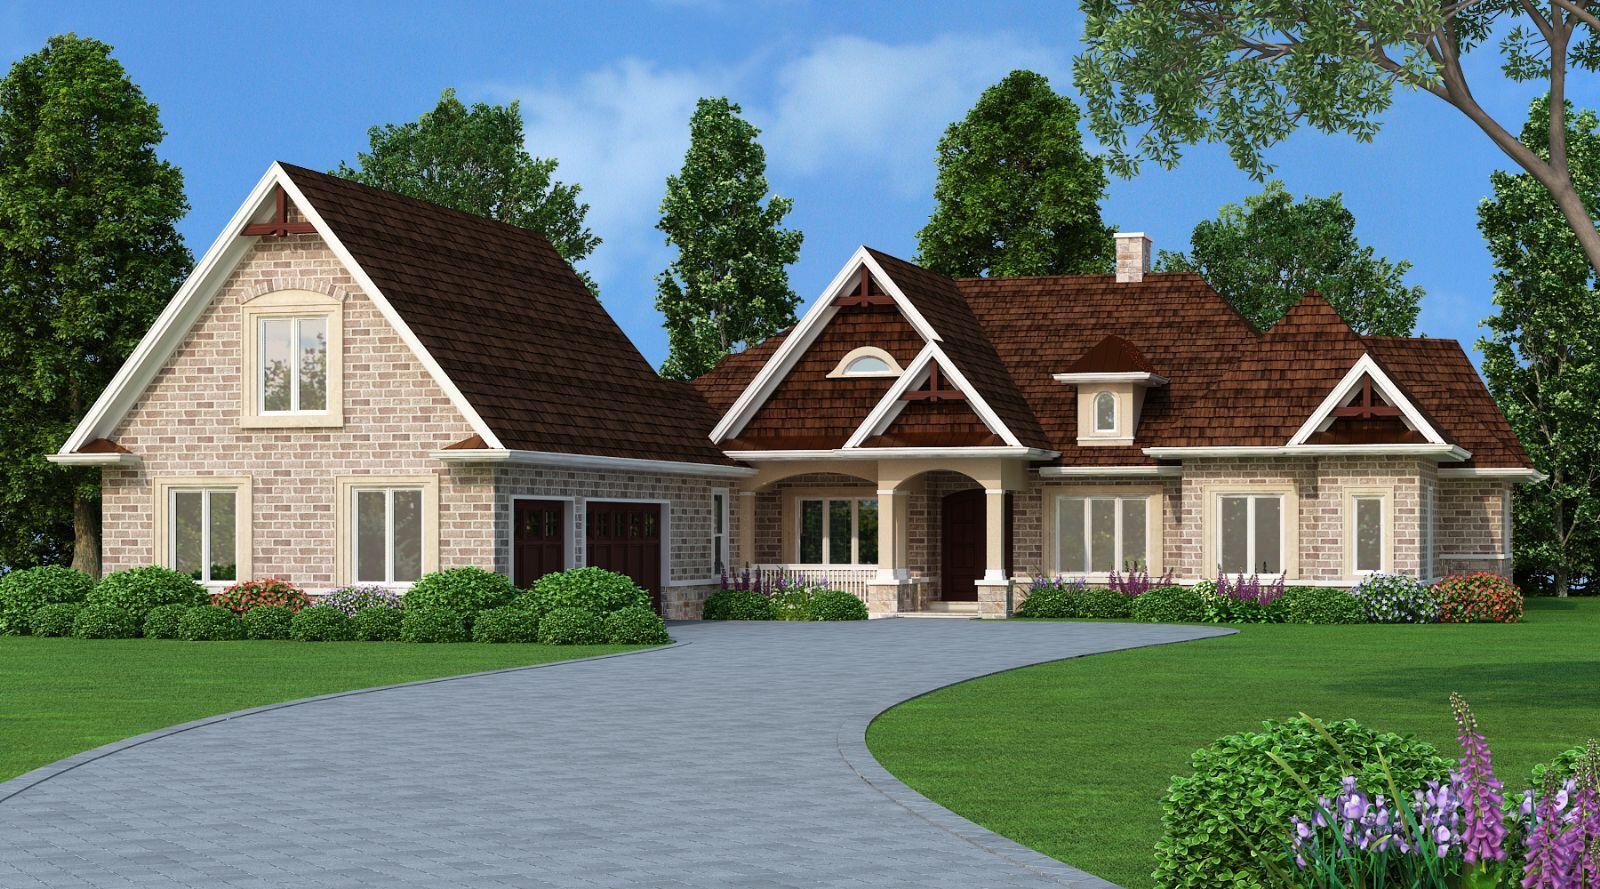 Neighbors And Passersby Will Compliment You On Your Lovely New Home. This  One Story Design Features A Nostalgic Front Porch, Which Promotes  Relaxation And ...